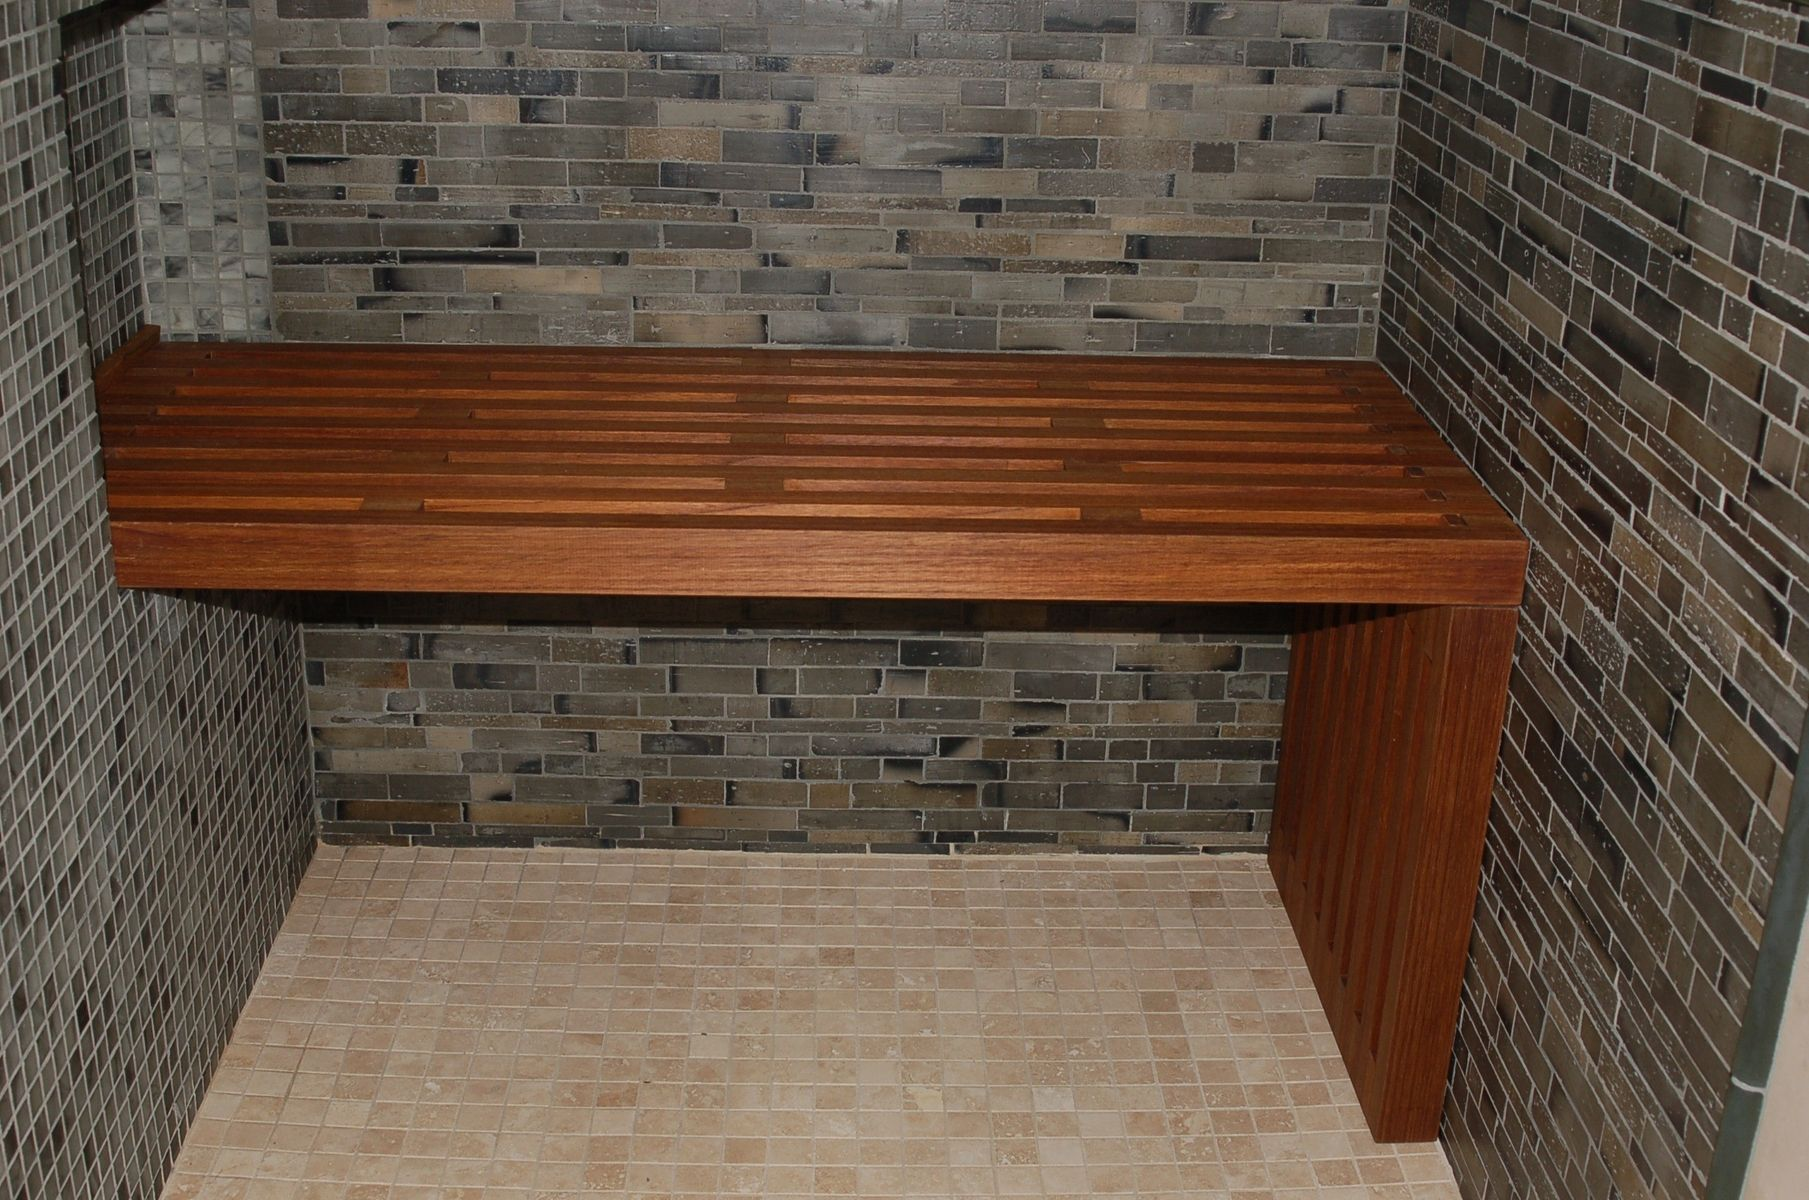 Teak Bench Built Into Wall For Support On One Side Teak Shower Teak Bathroom